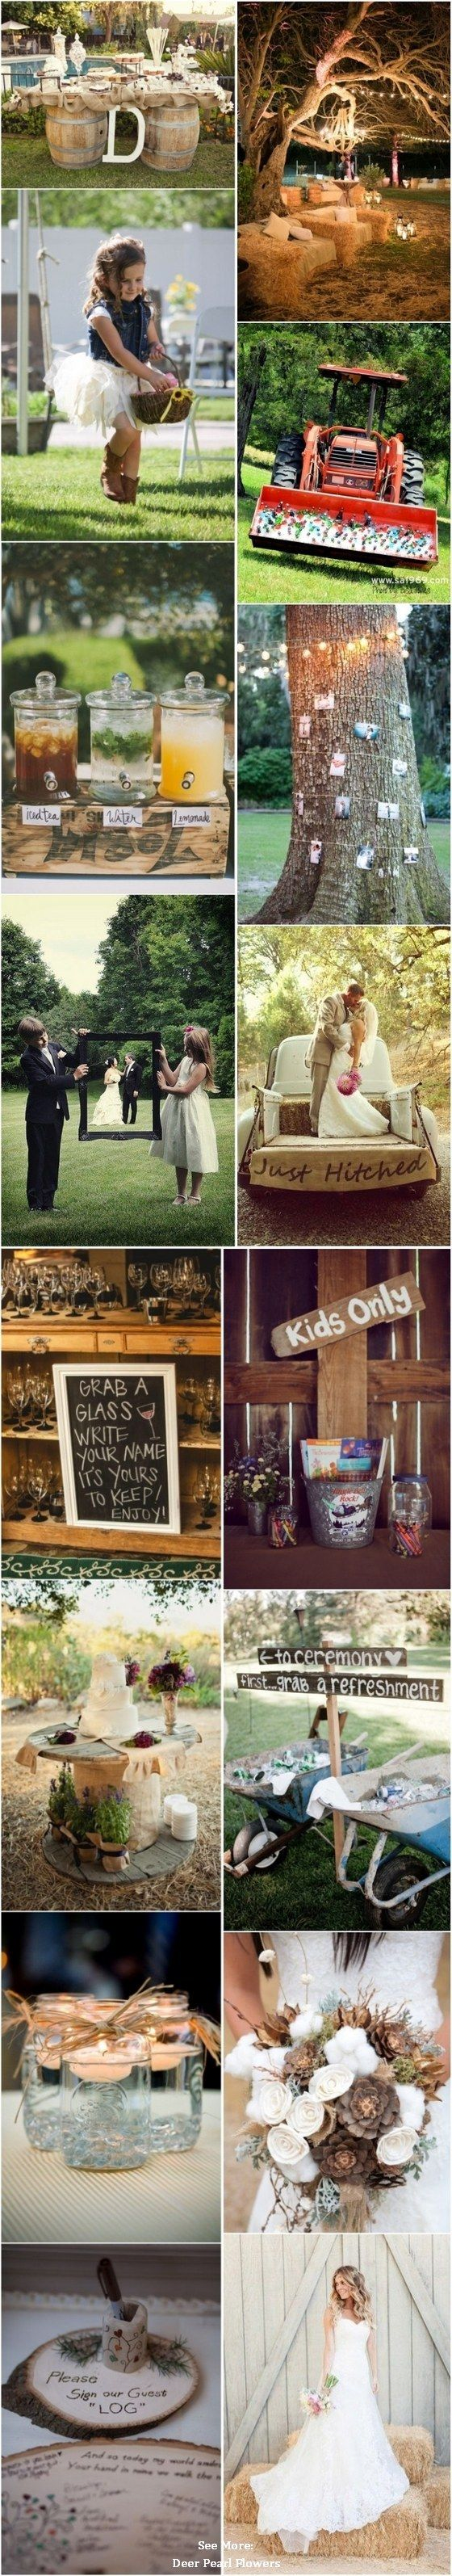 56 Perfect Rustic Country Wedding Ideas / http://www.deerpearlflowers.com/50-perfect-rustic-country-wedding-ideas/